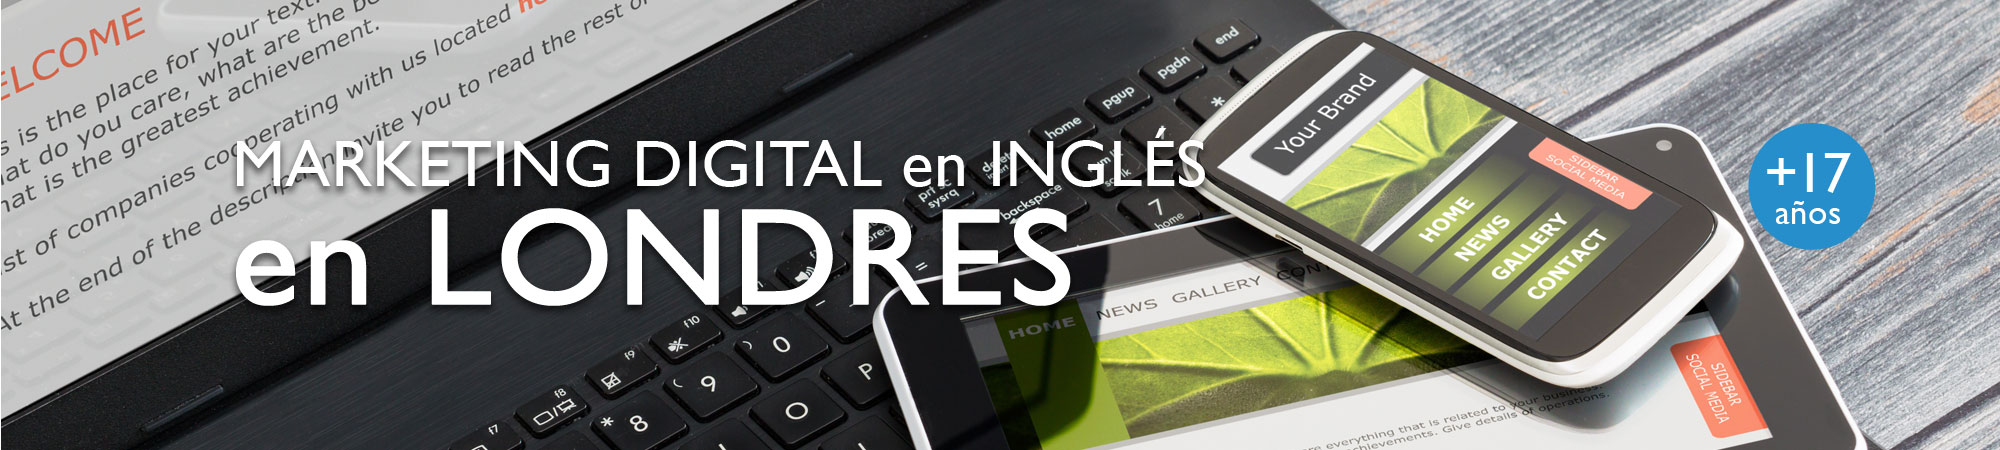 Marketing digital en ingles en Londres cursos en el extranjero Midleton School